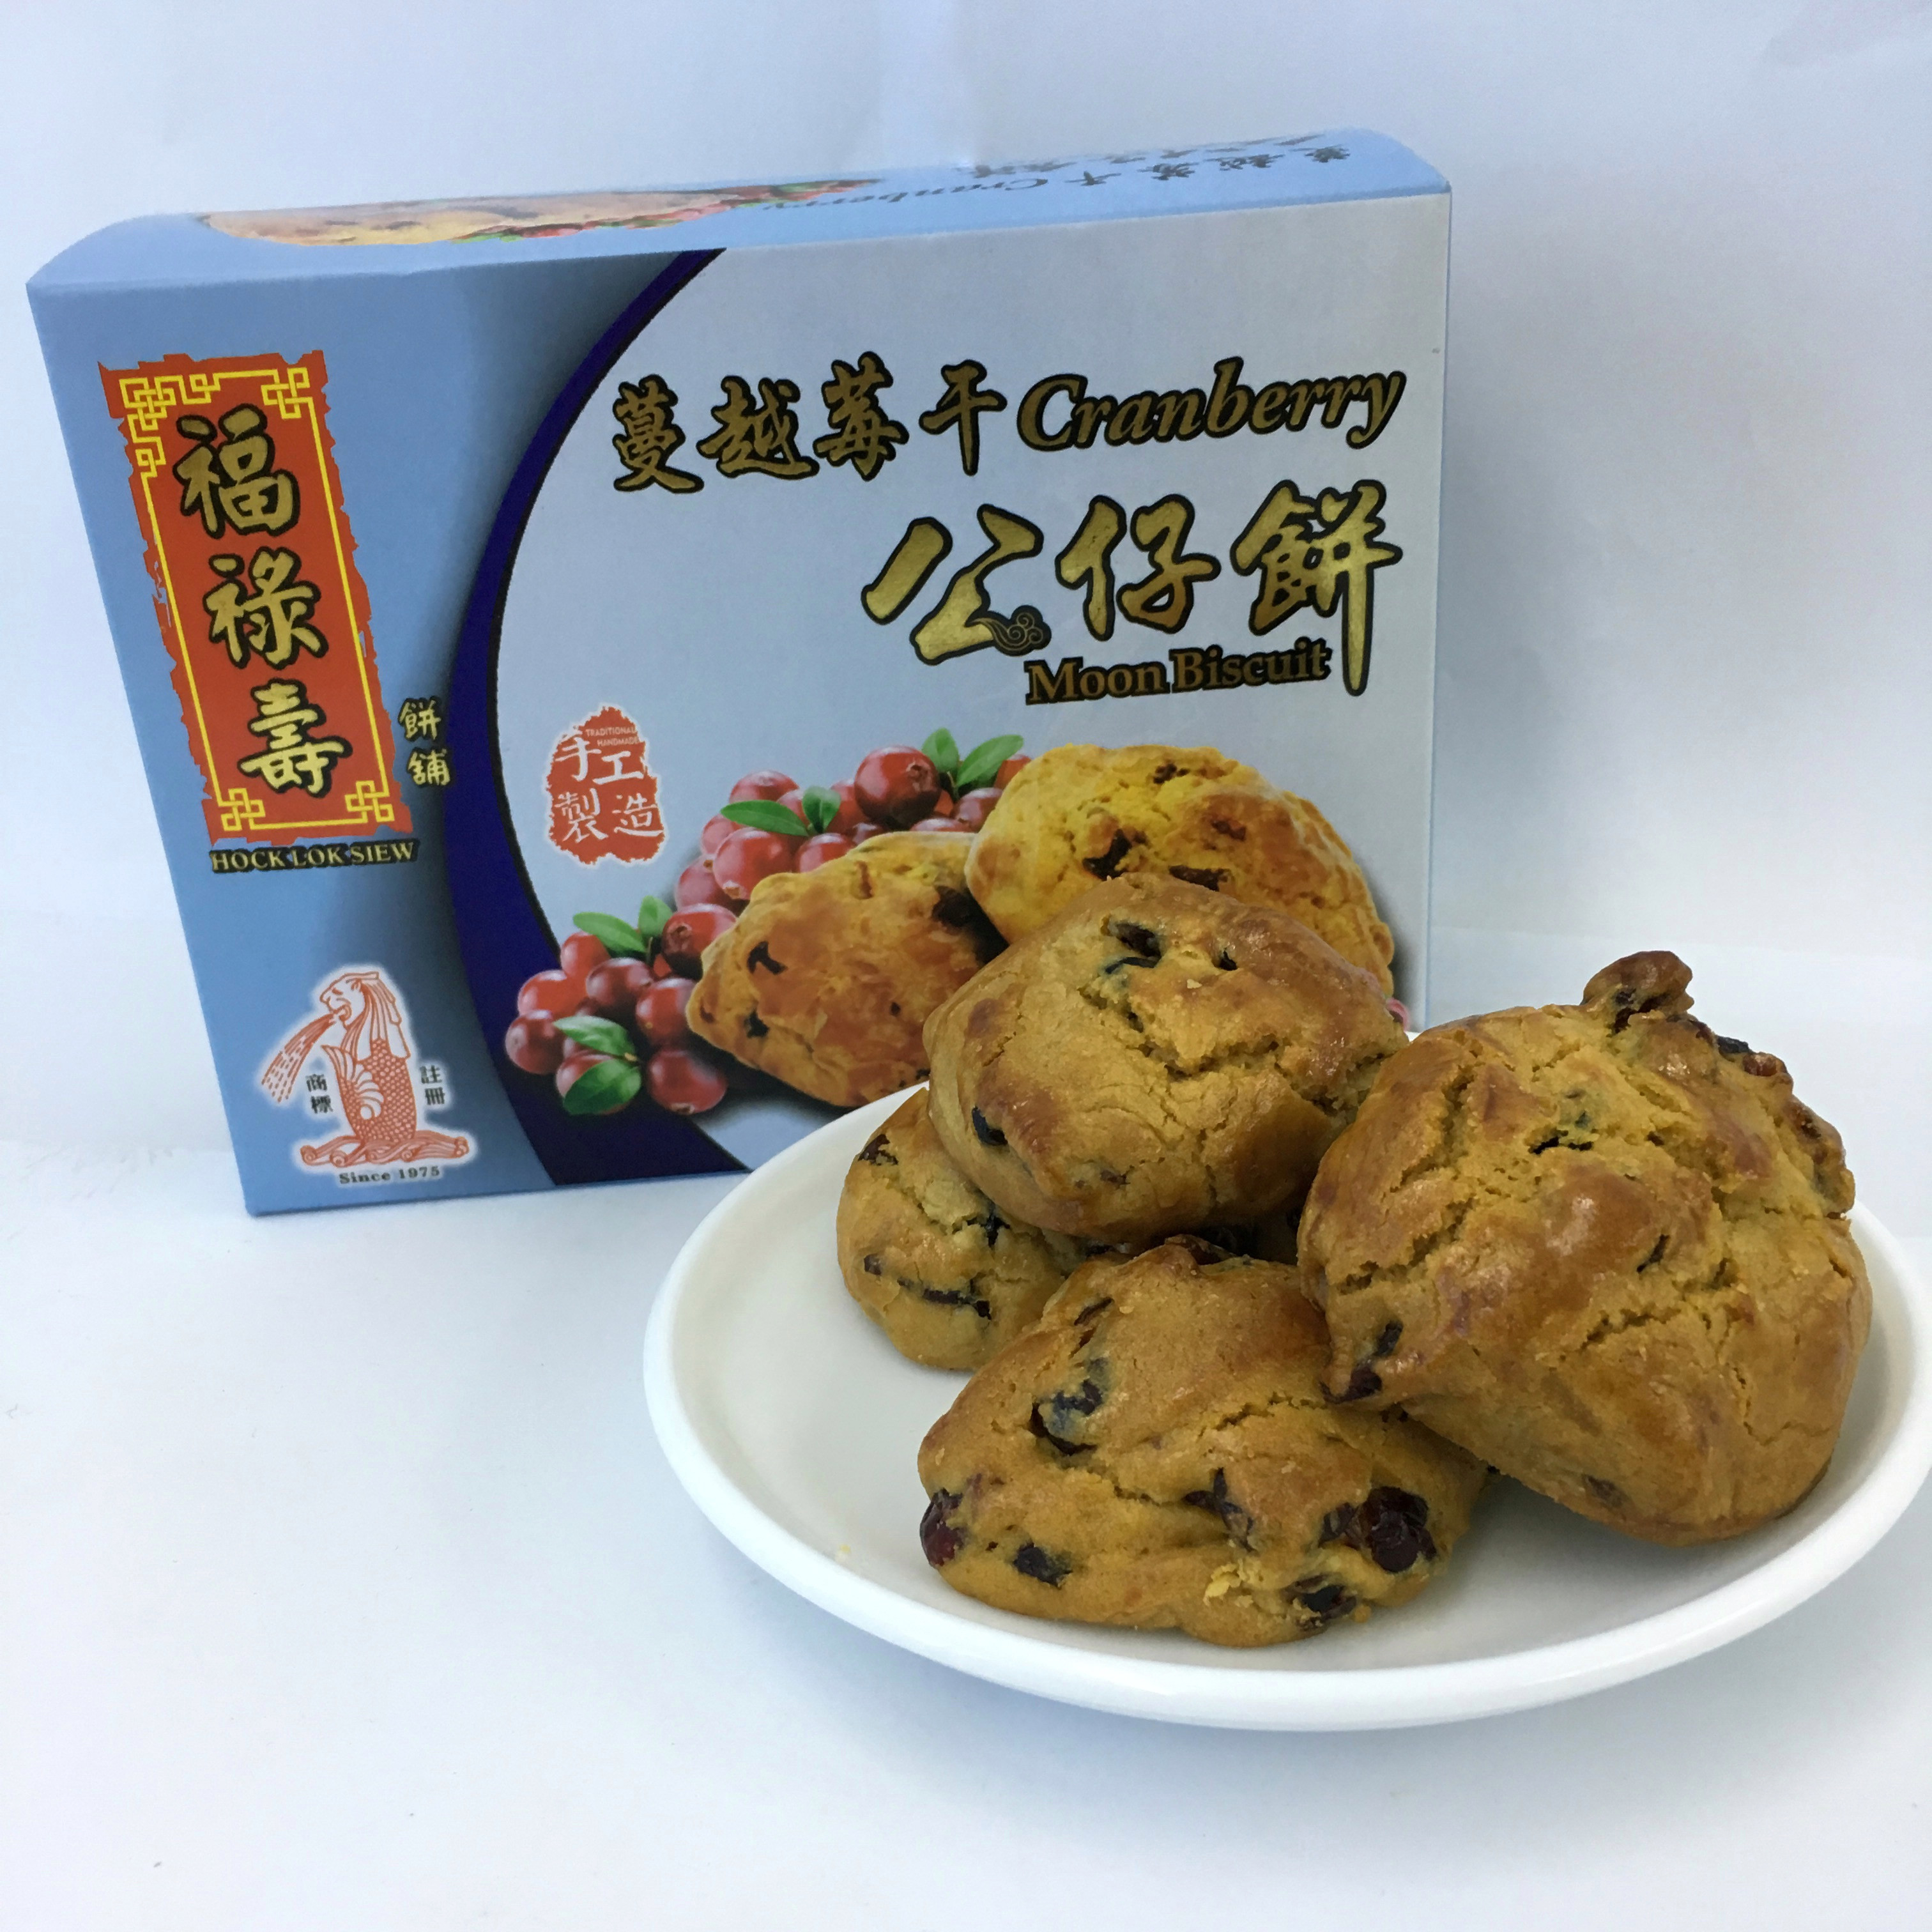 image of Cranberry Moon Biscuit 蔓越莓干公仔饼